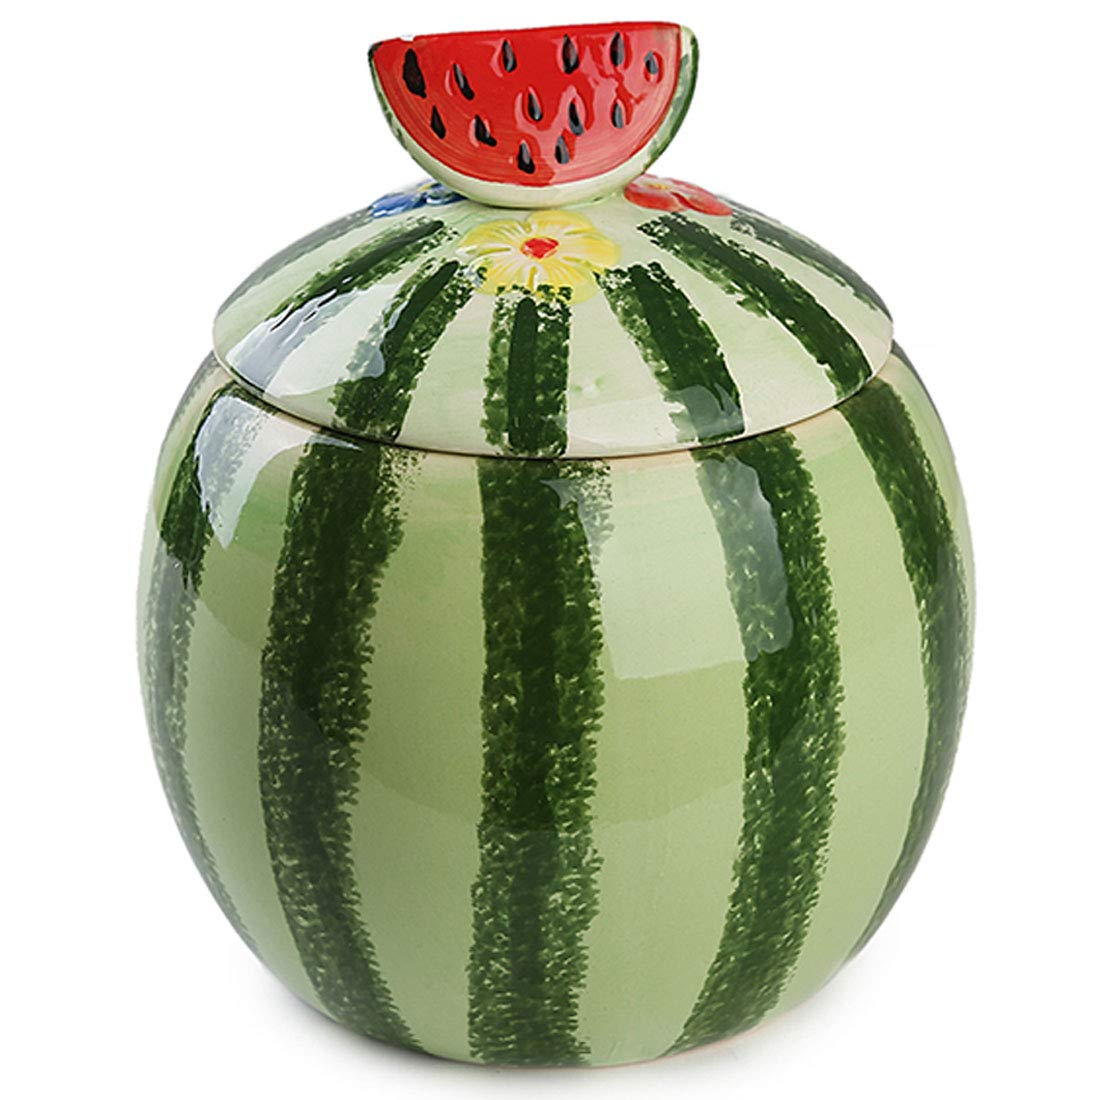 Cool Lemon 3D Watermelon Ceramic Ornaments Candy Snack Tank Jar Containers Storage Canister Lidded Cookie Jar Decorative Jar for Home Decoration